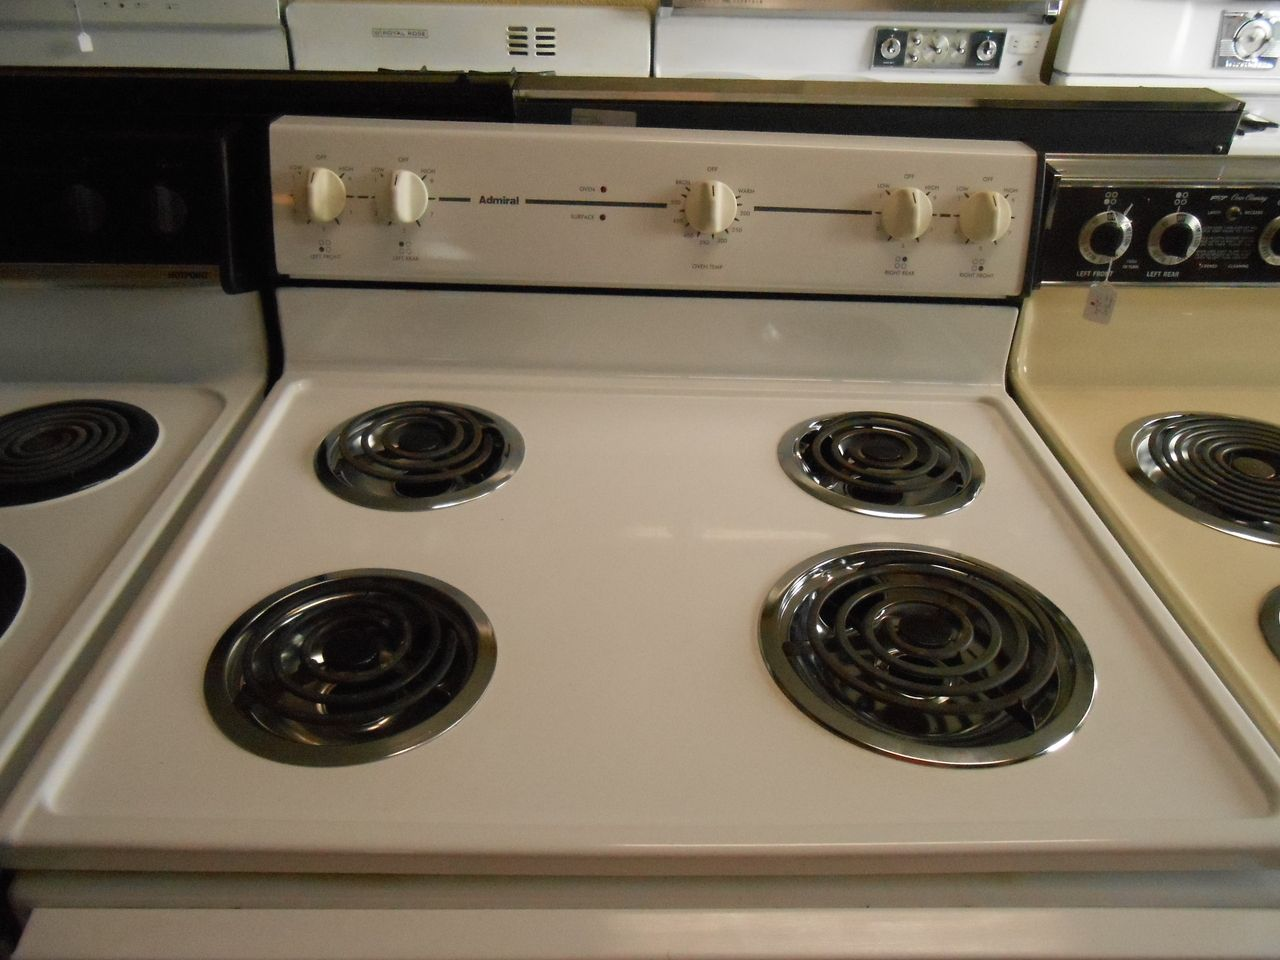 Appliance City - ADMIRAL ELECTRIC RANGE COIL BURNERS 3 SMALL AND 1 ...